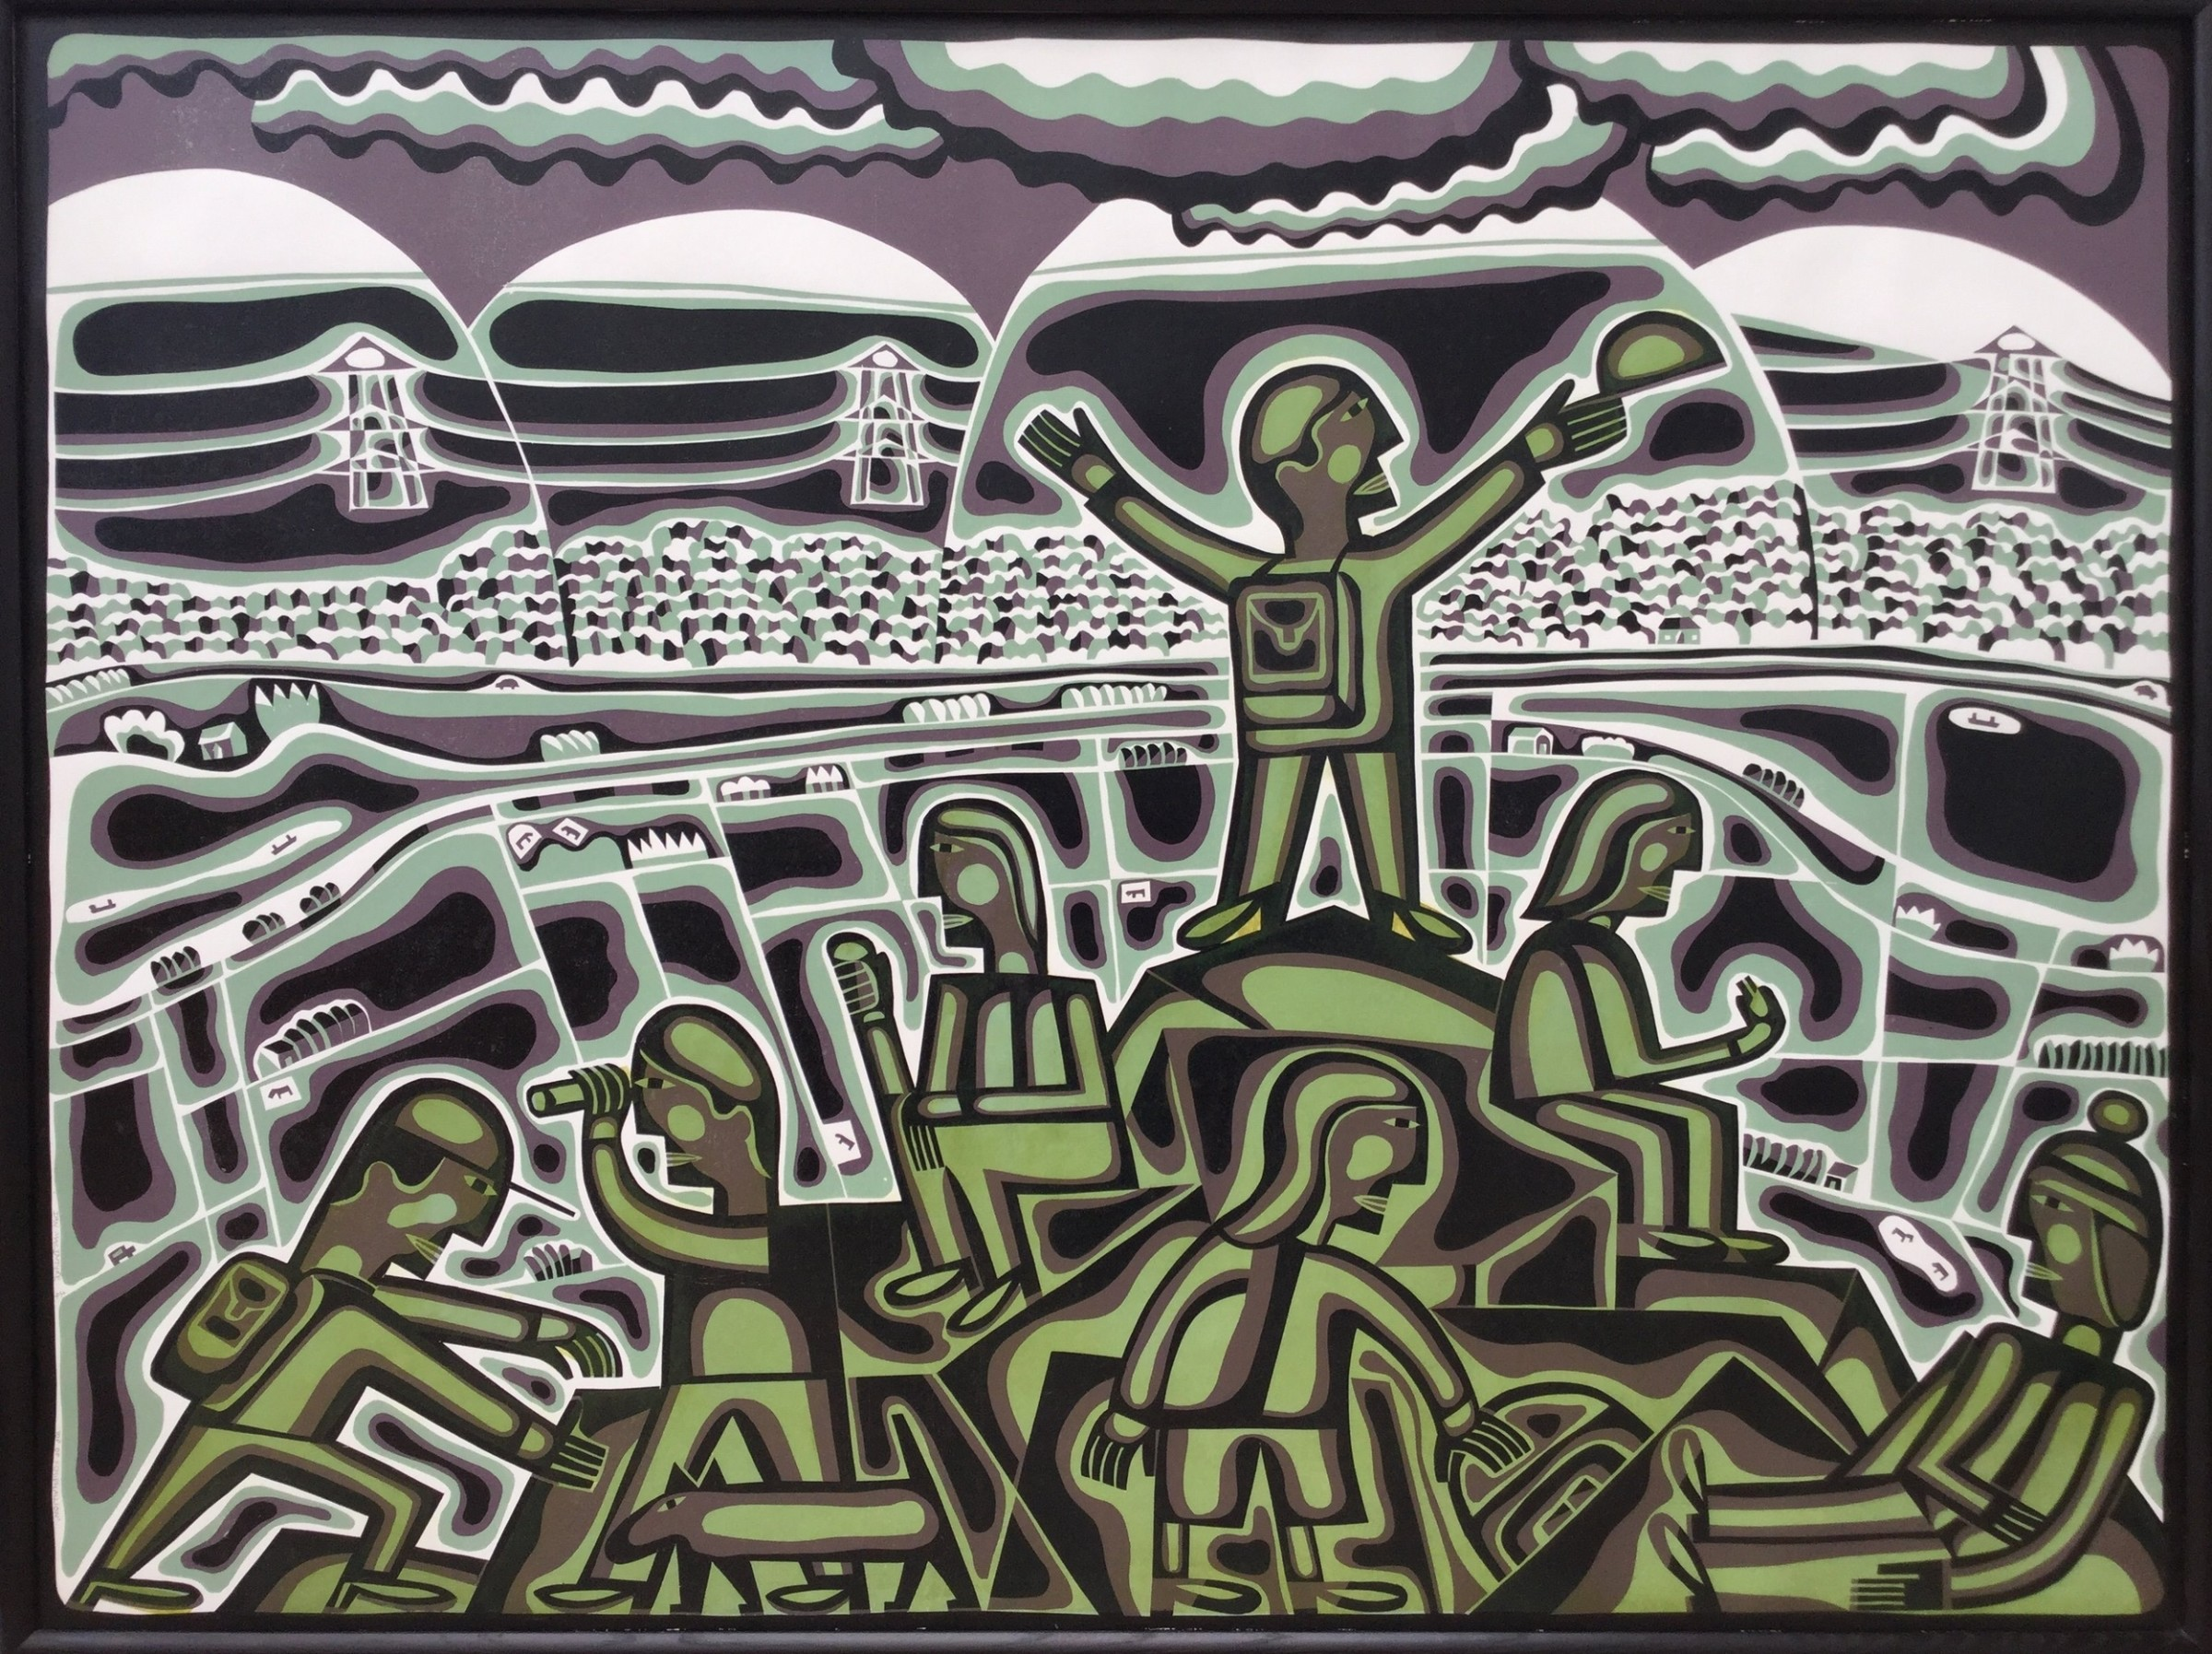 "<span class=""link fancybox-details-link""><a href=""/exhibitions/18/works/image_standalone1027/"">View Detail Page</a></span><p>Ian MacIntyre</p><p>Top of Schiehallion</p><p>relief print</p><p>126 x 96cm</p><p>£2100 framed</p><p>£2000 unframed</p>"